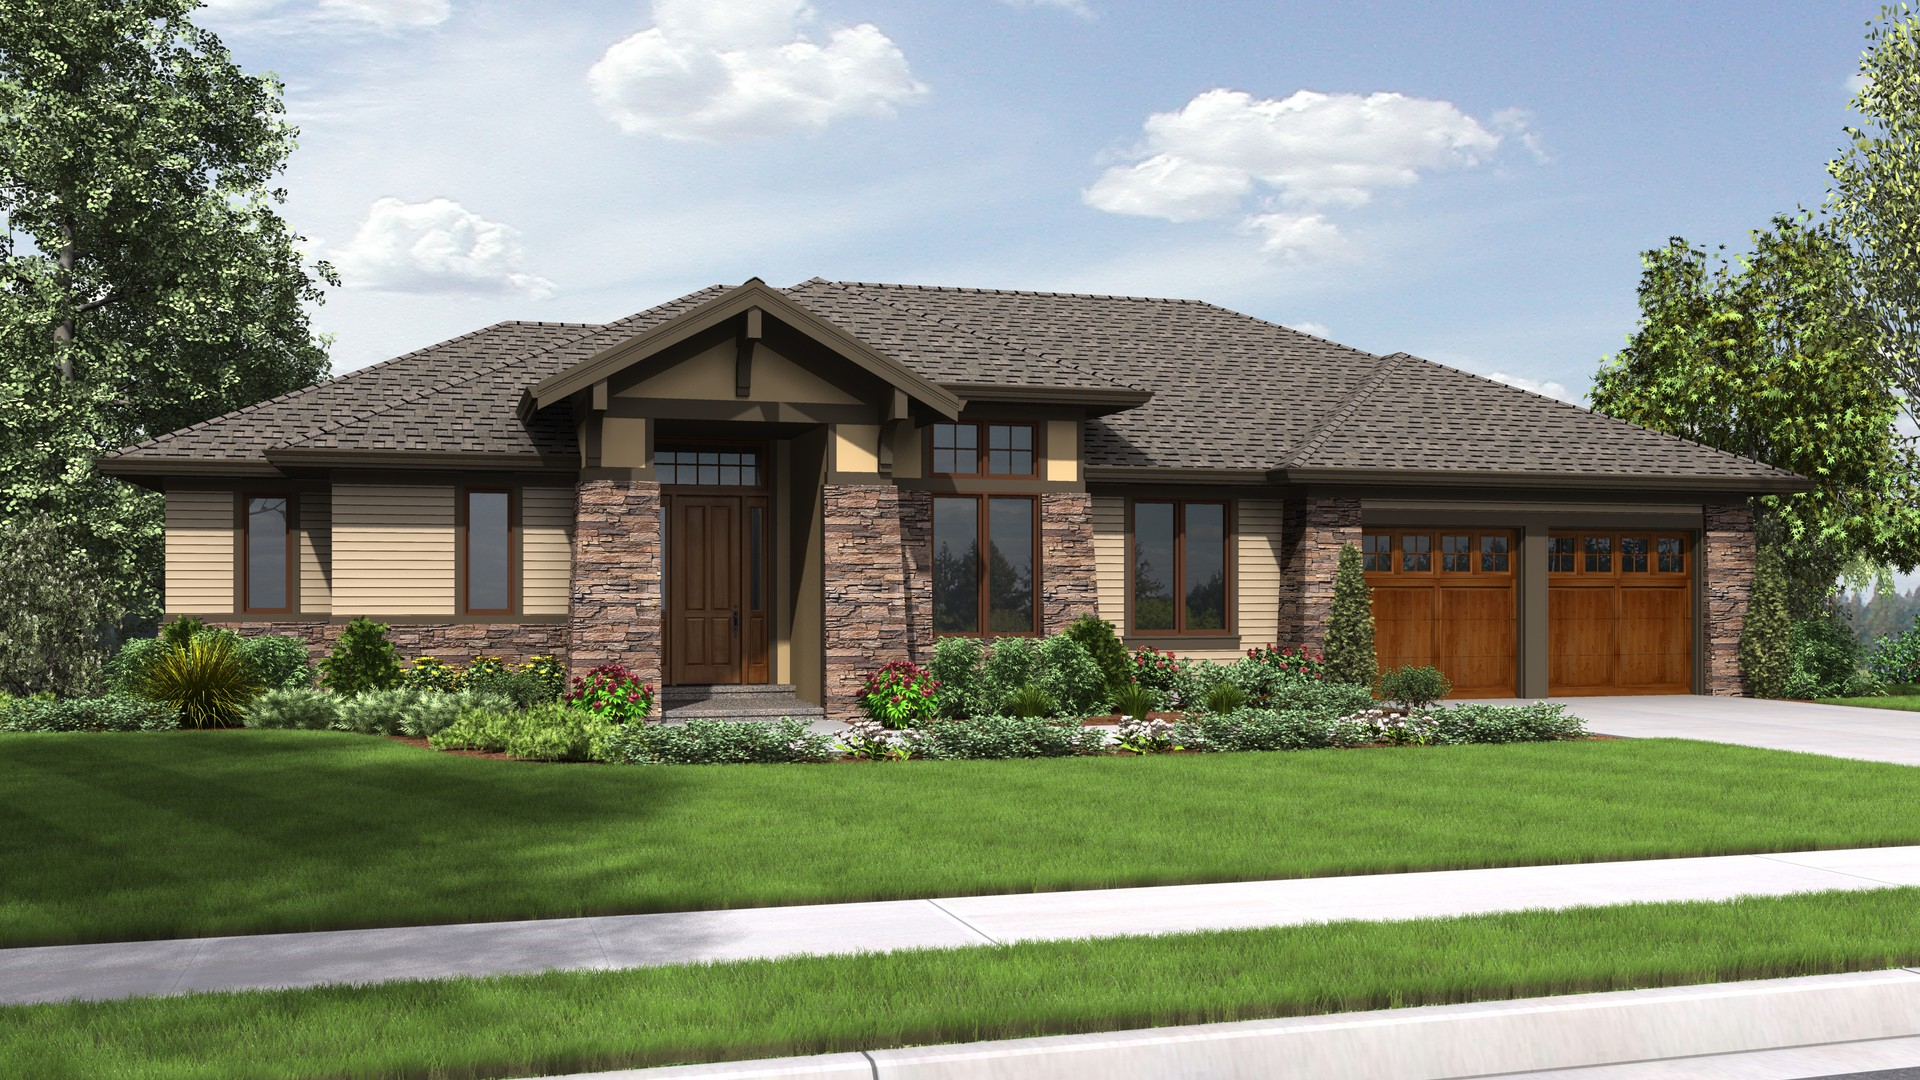 Contemporary House Plan 1339 The Briarwood: 2694 Sqft, 3 Bedrooms ...